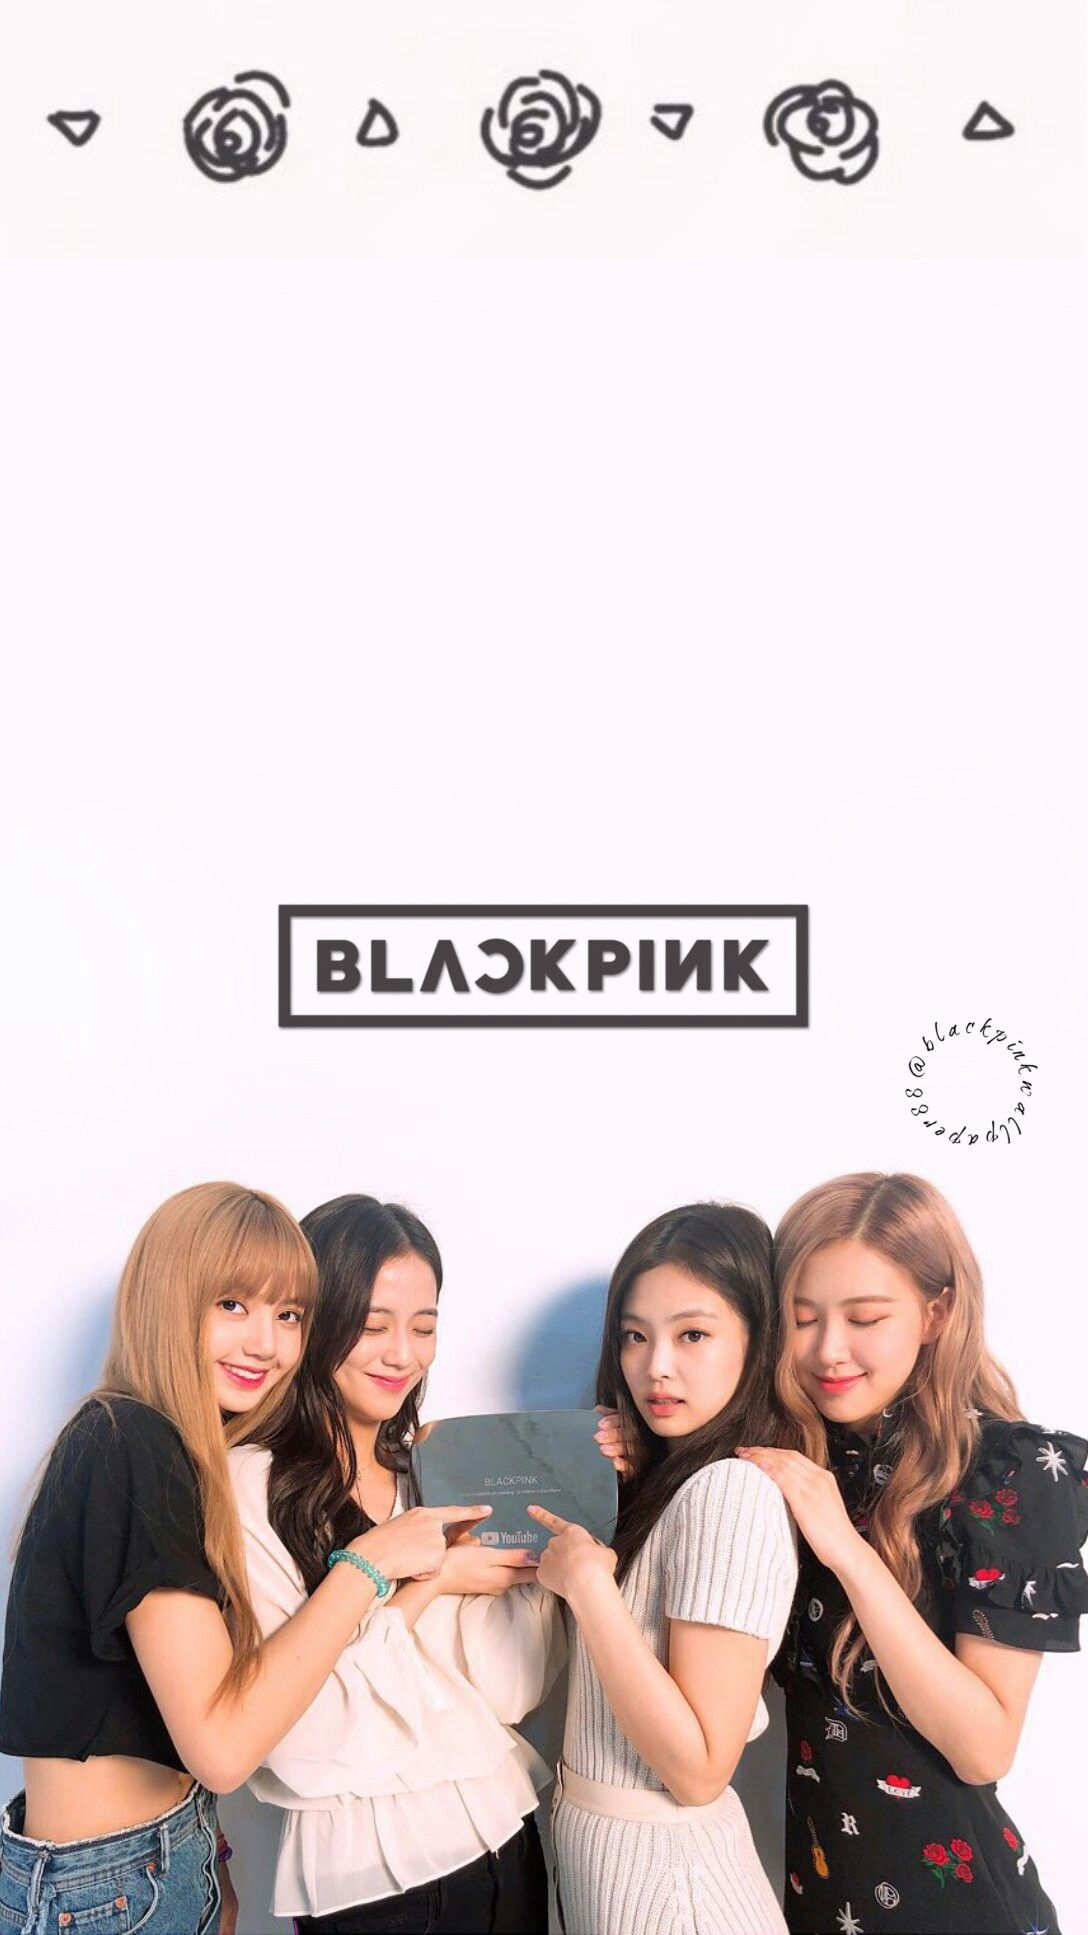 Pin De Jugu Em Blackpink Wallpaper Blakpink Blackpink